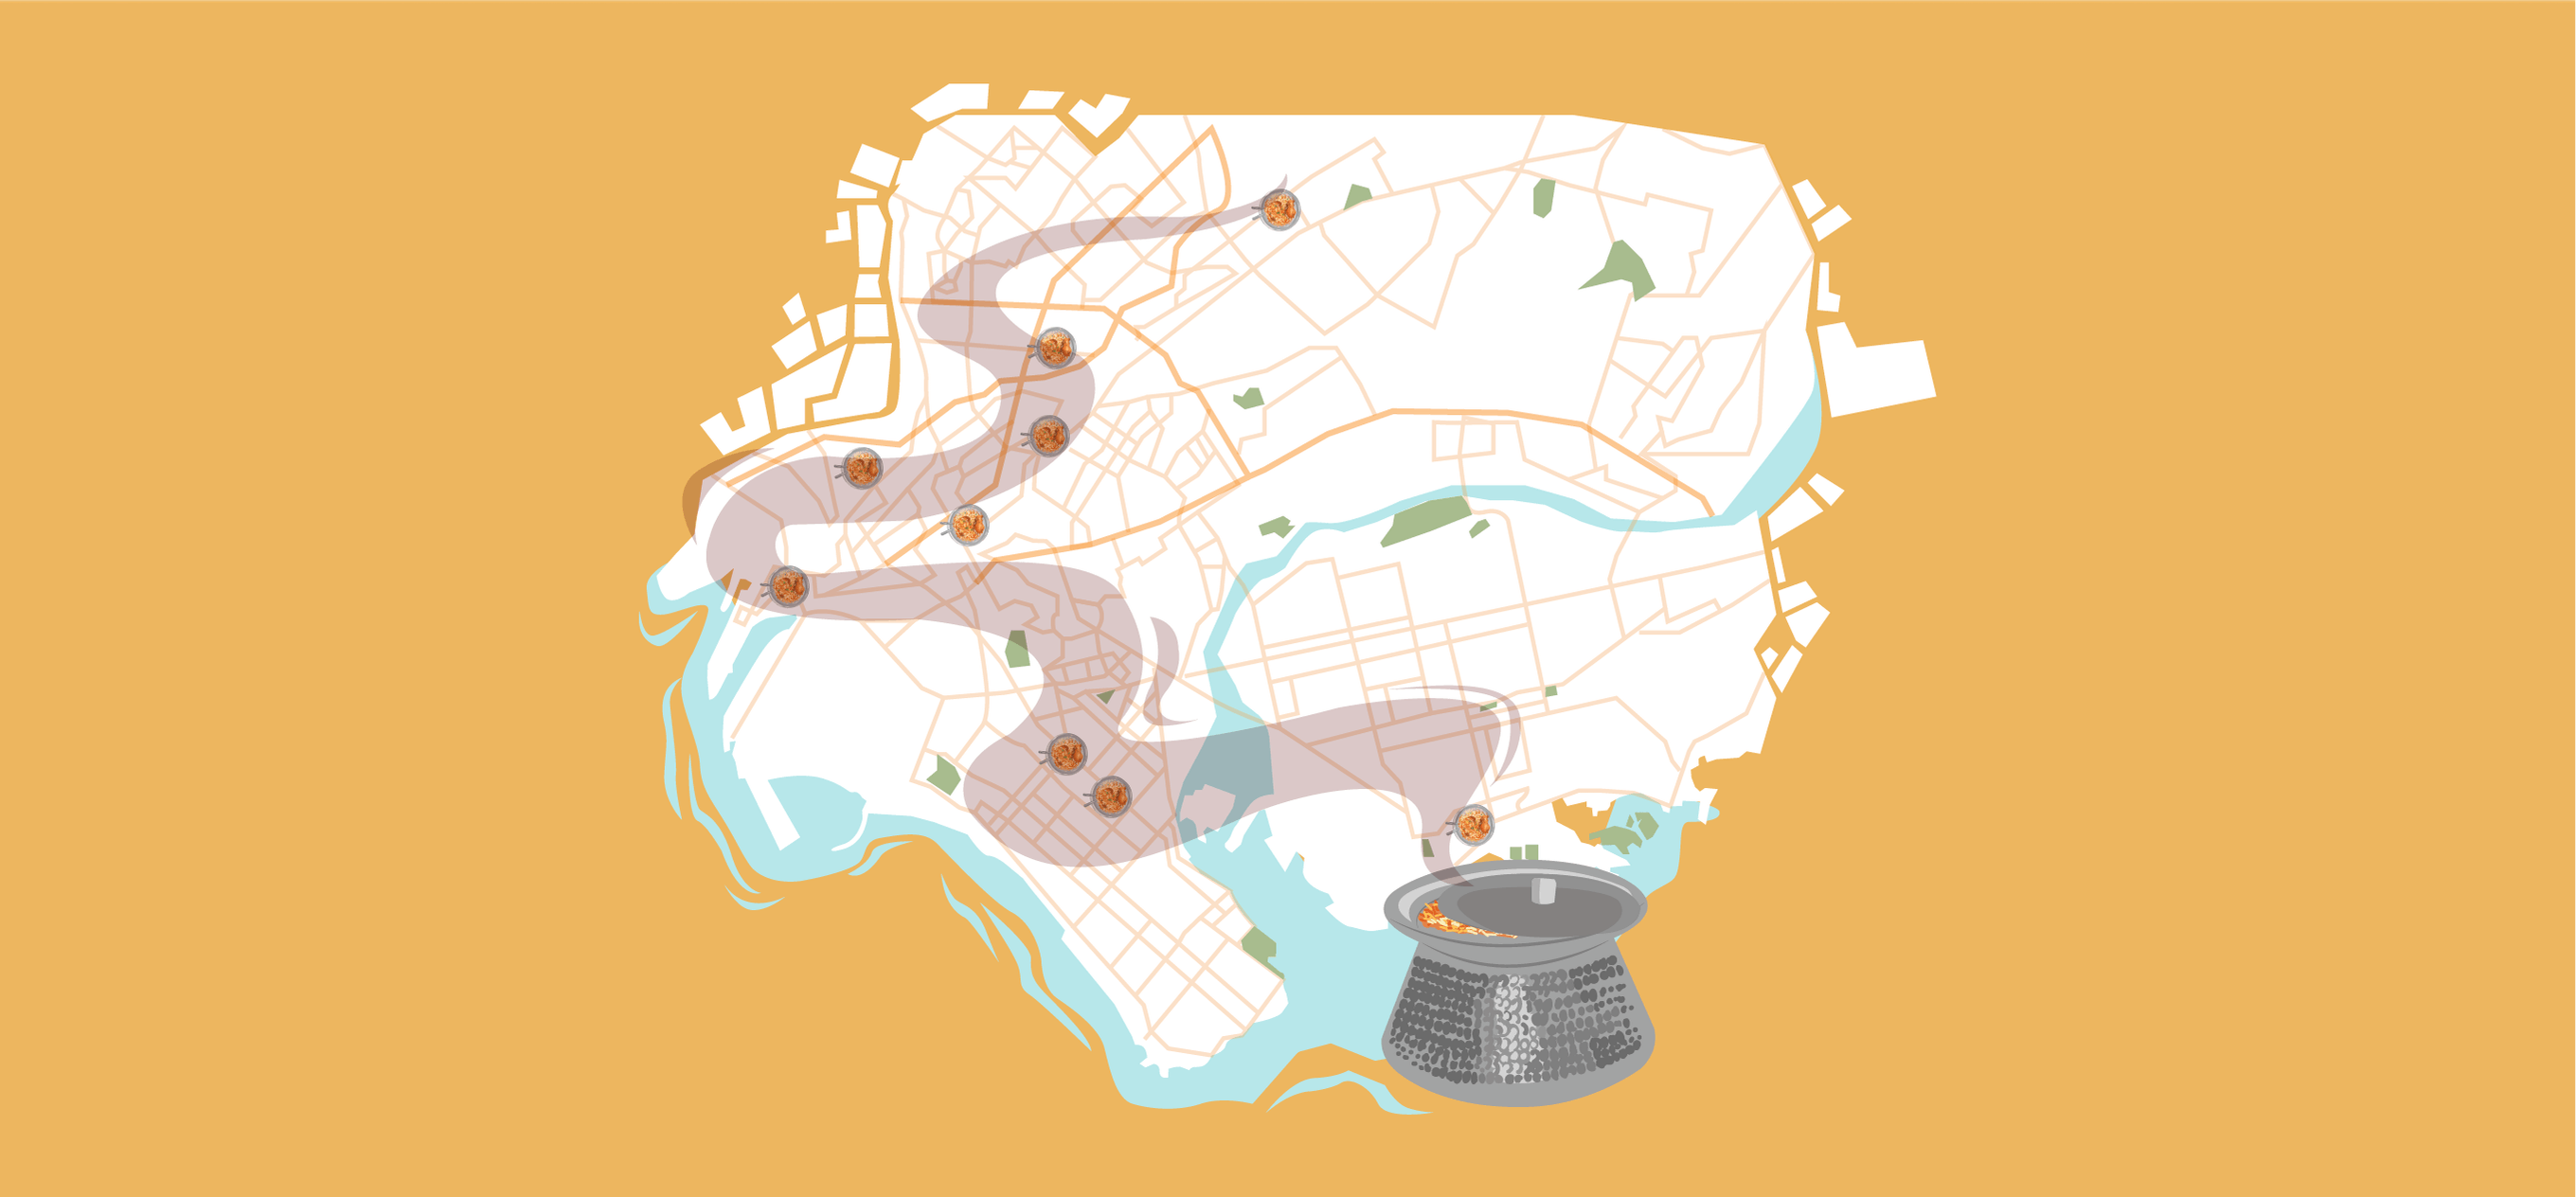 Rice, Fat, Meat, Streets by Ahmer Naqvi; Illustration by Akshaya Zachariah for FiftyTwo.in